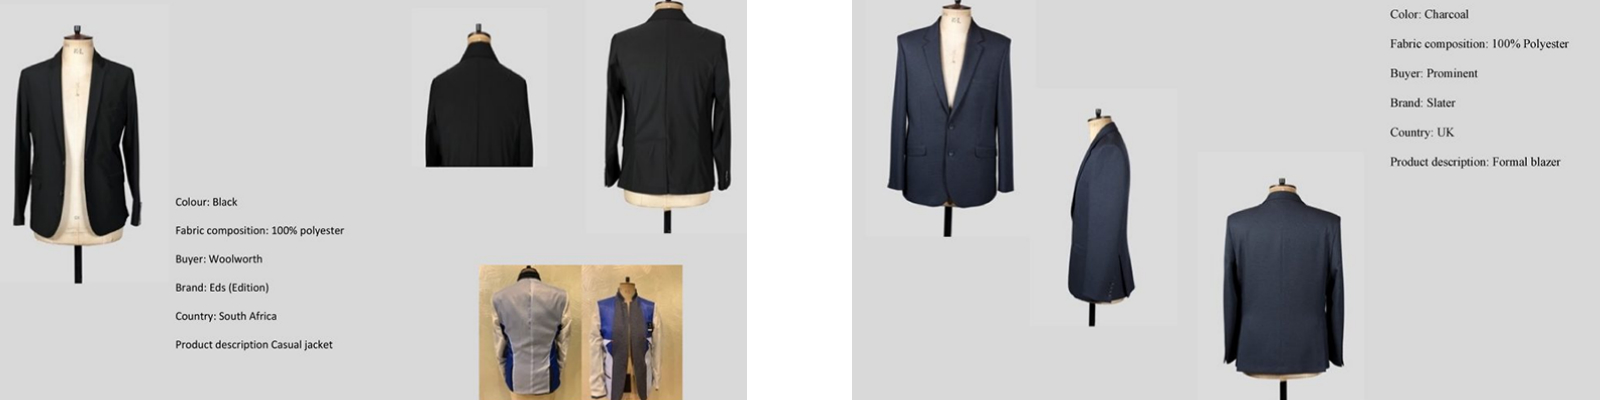 LGFG men's blazers for wholesale distribution